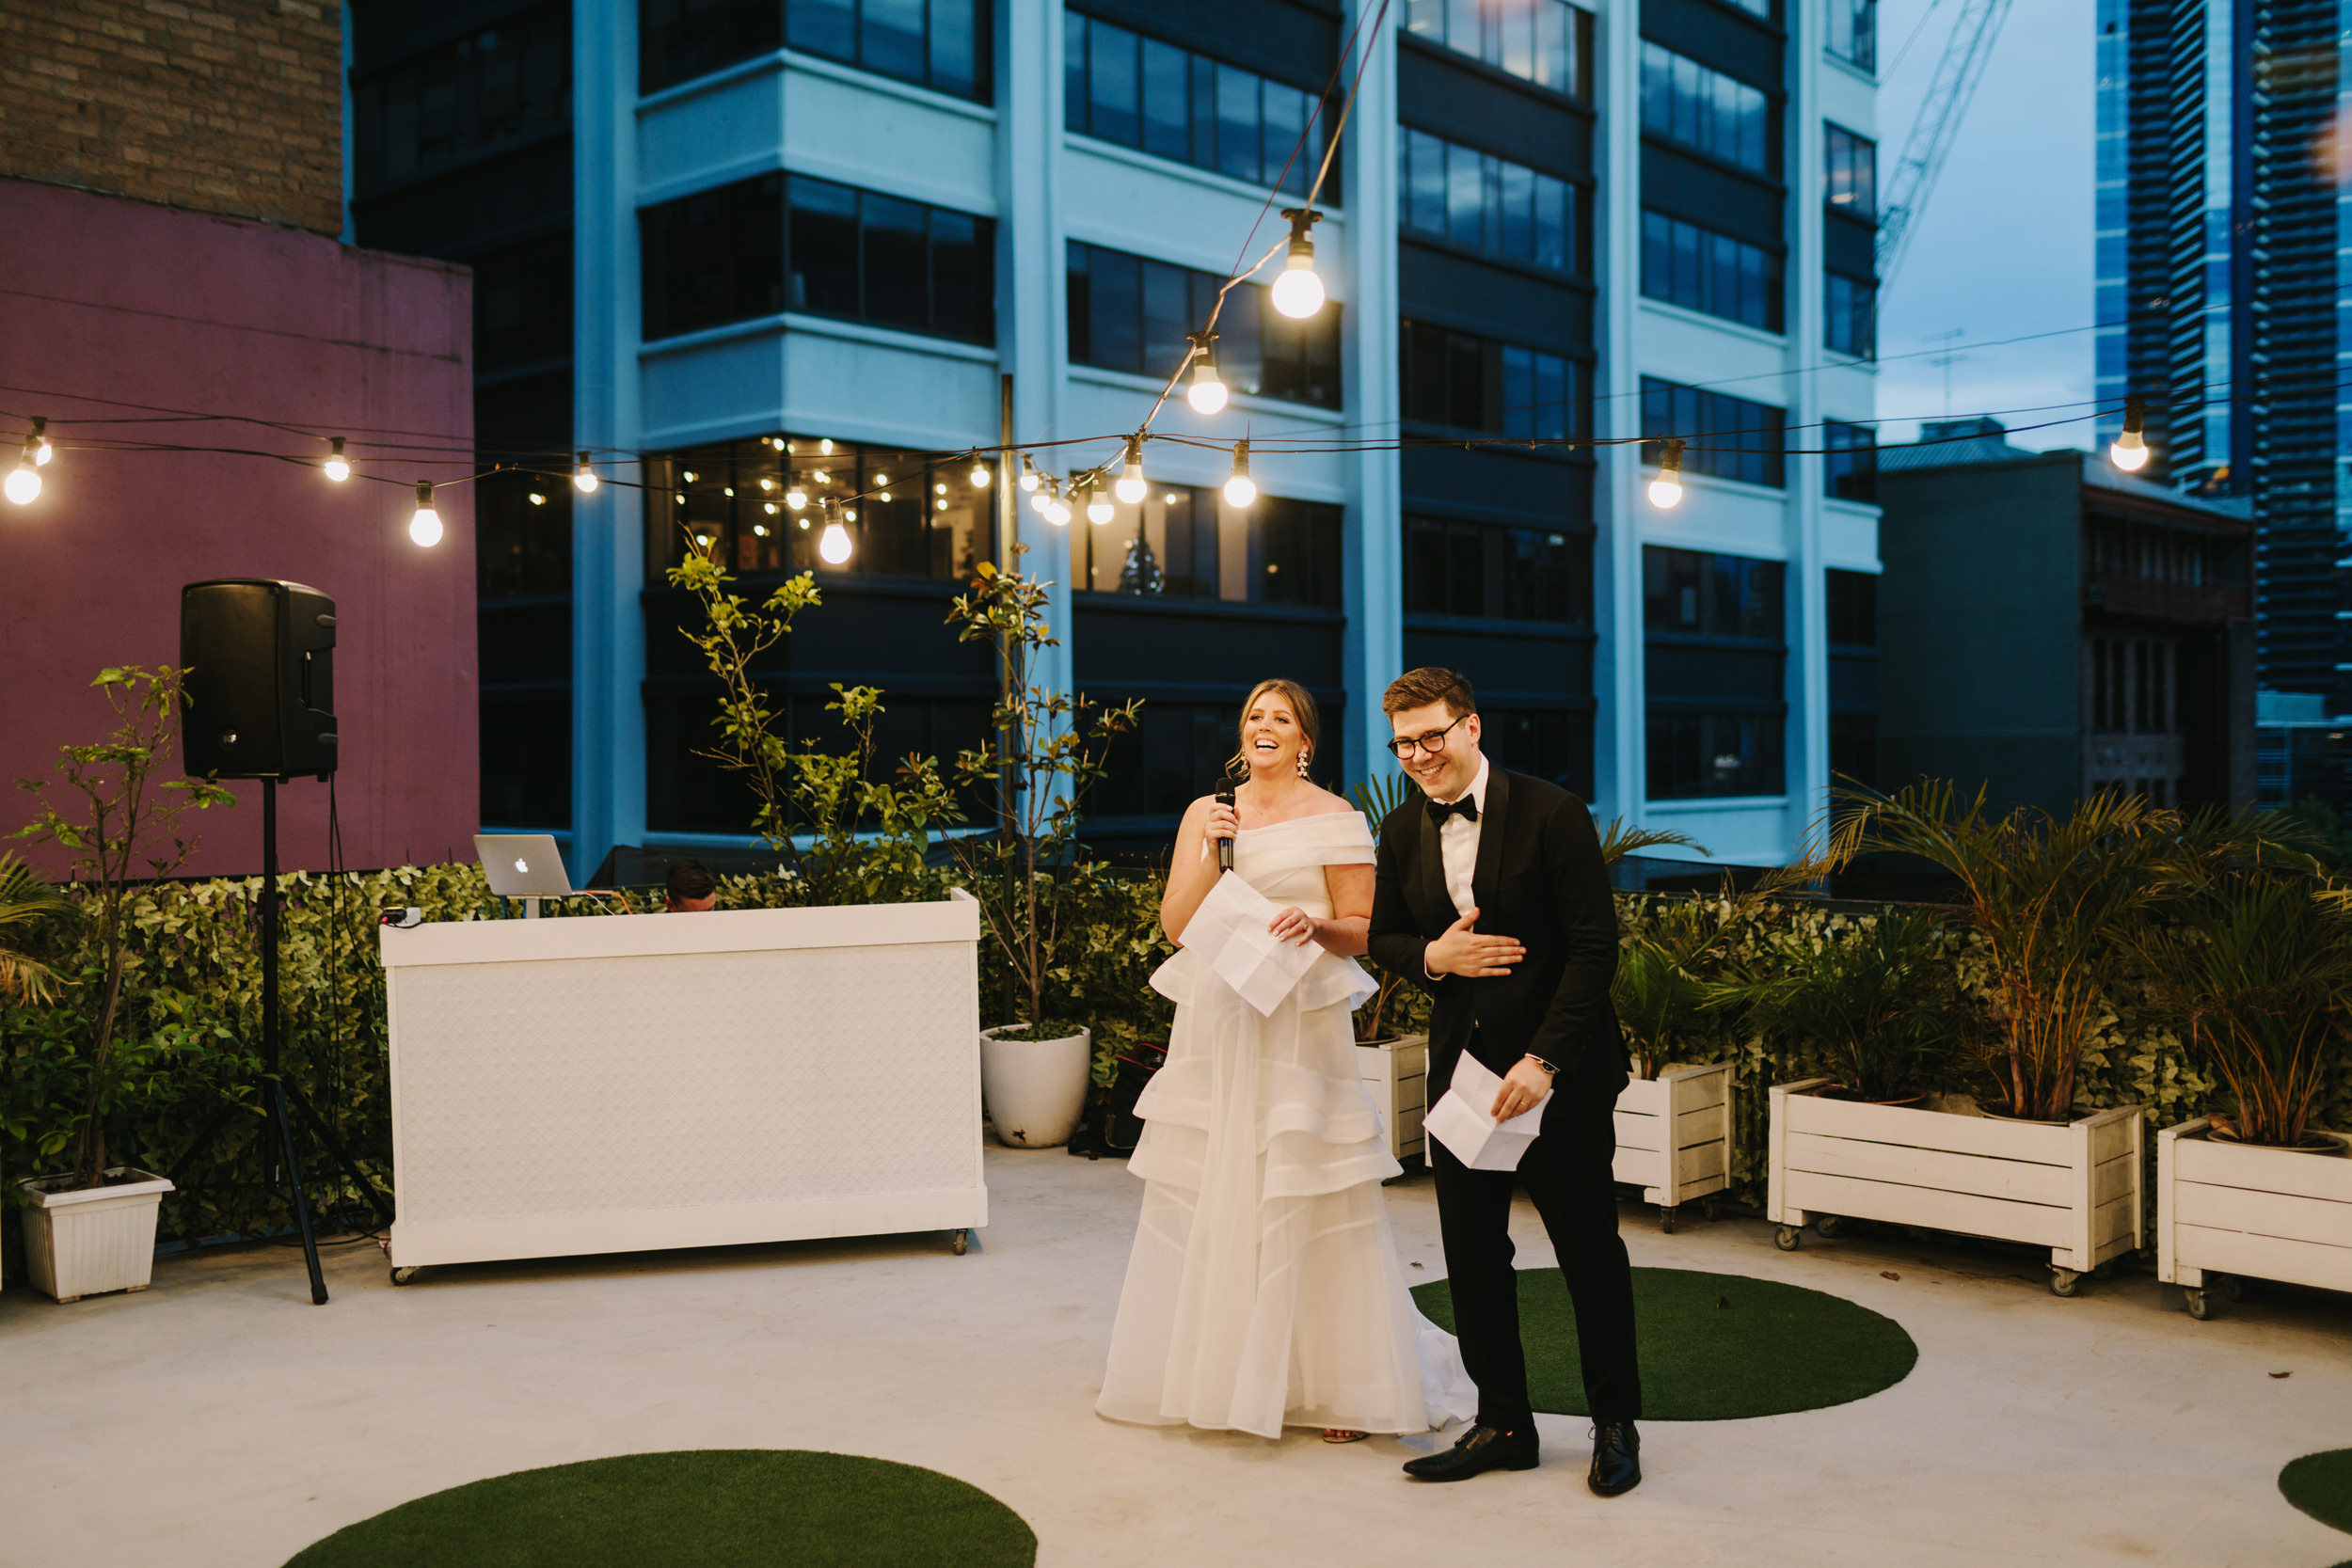 Melbourne_City_Rooftop_Wedding_Tyson_Brigette126.JPG